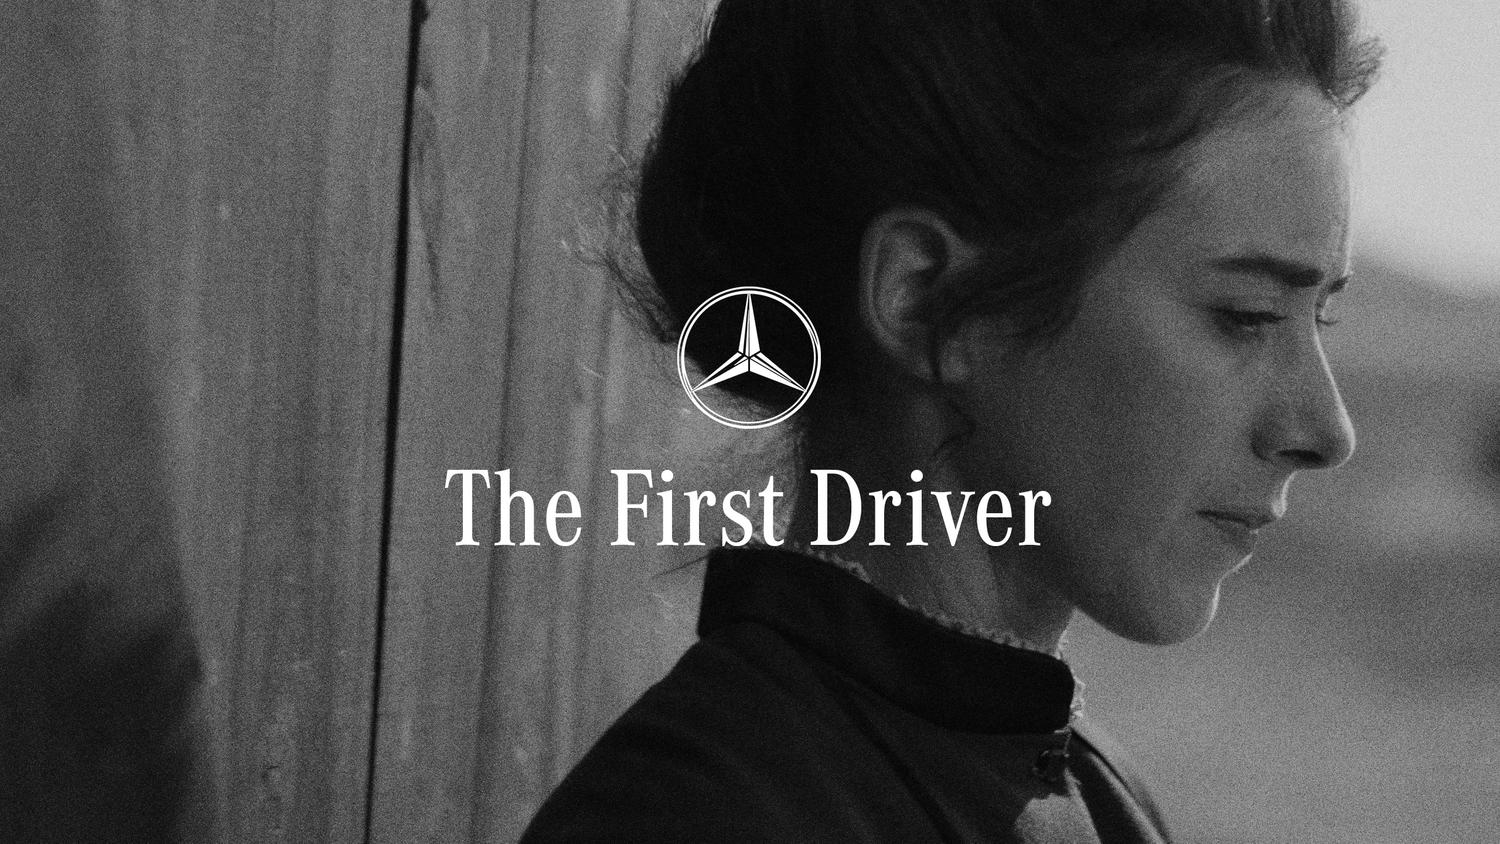 The First Driver